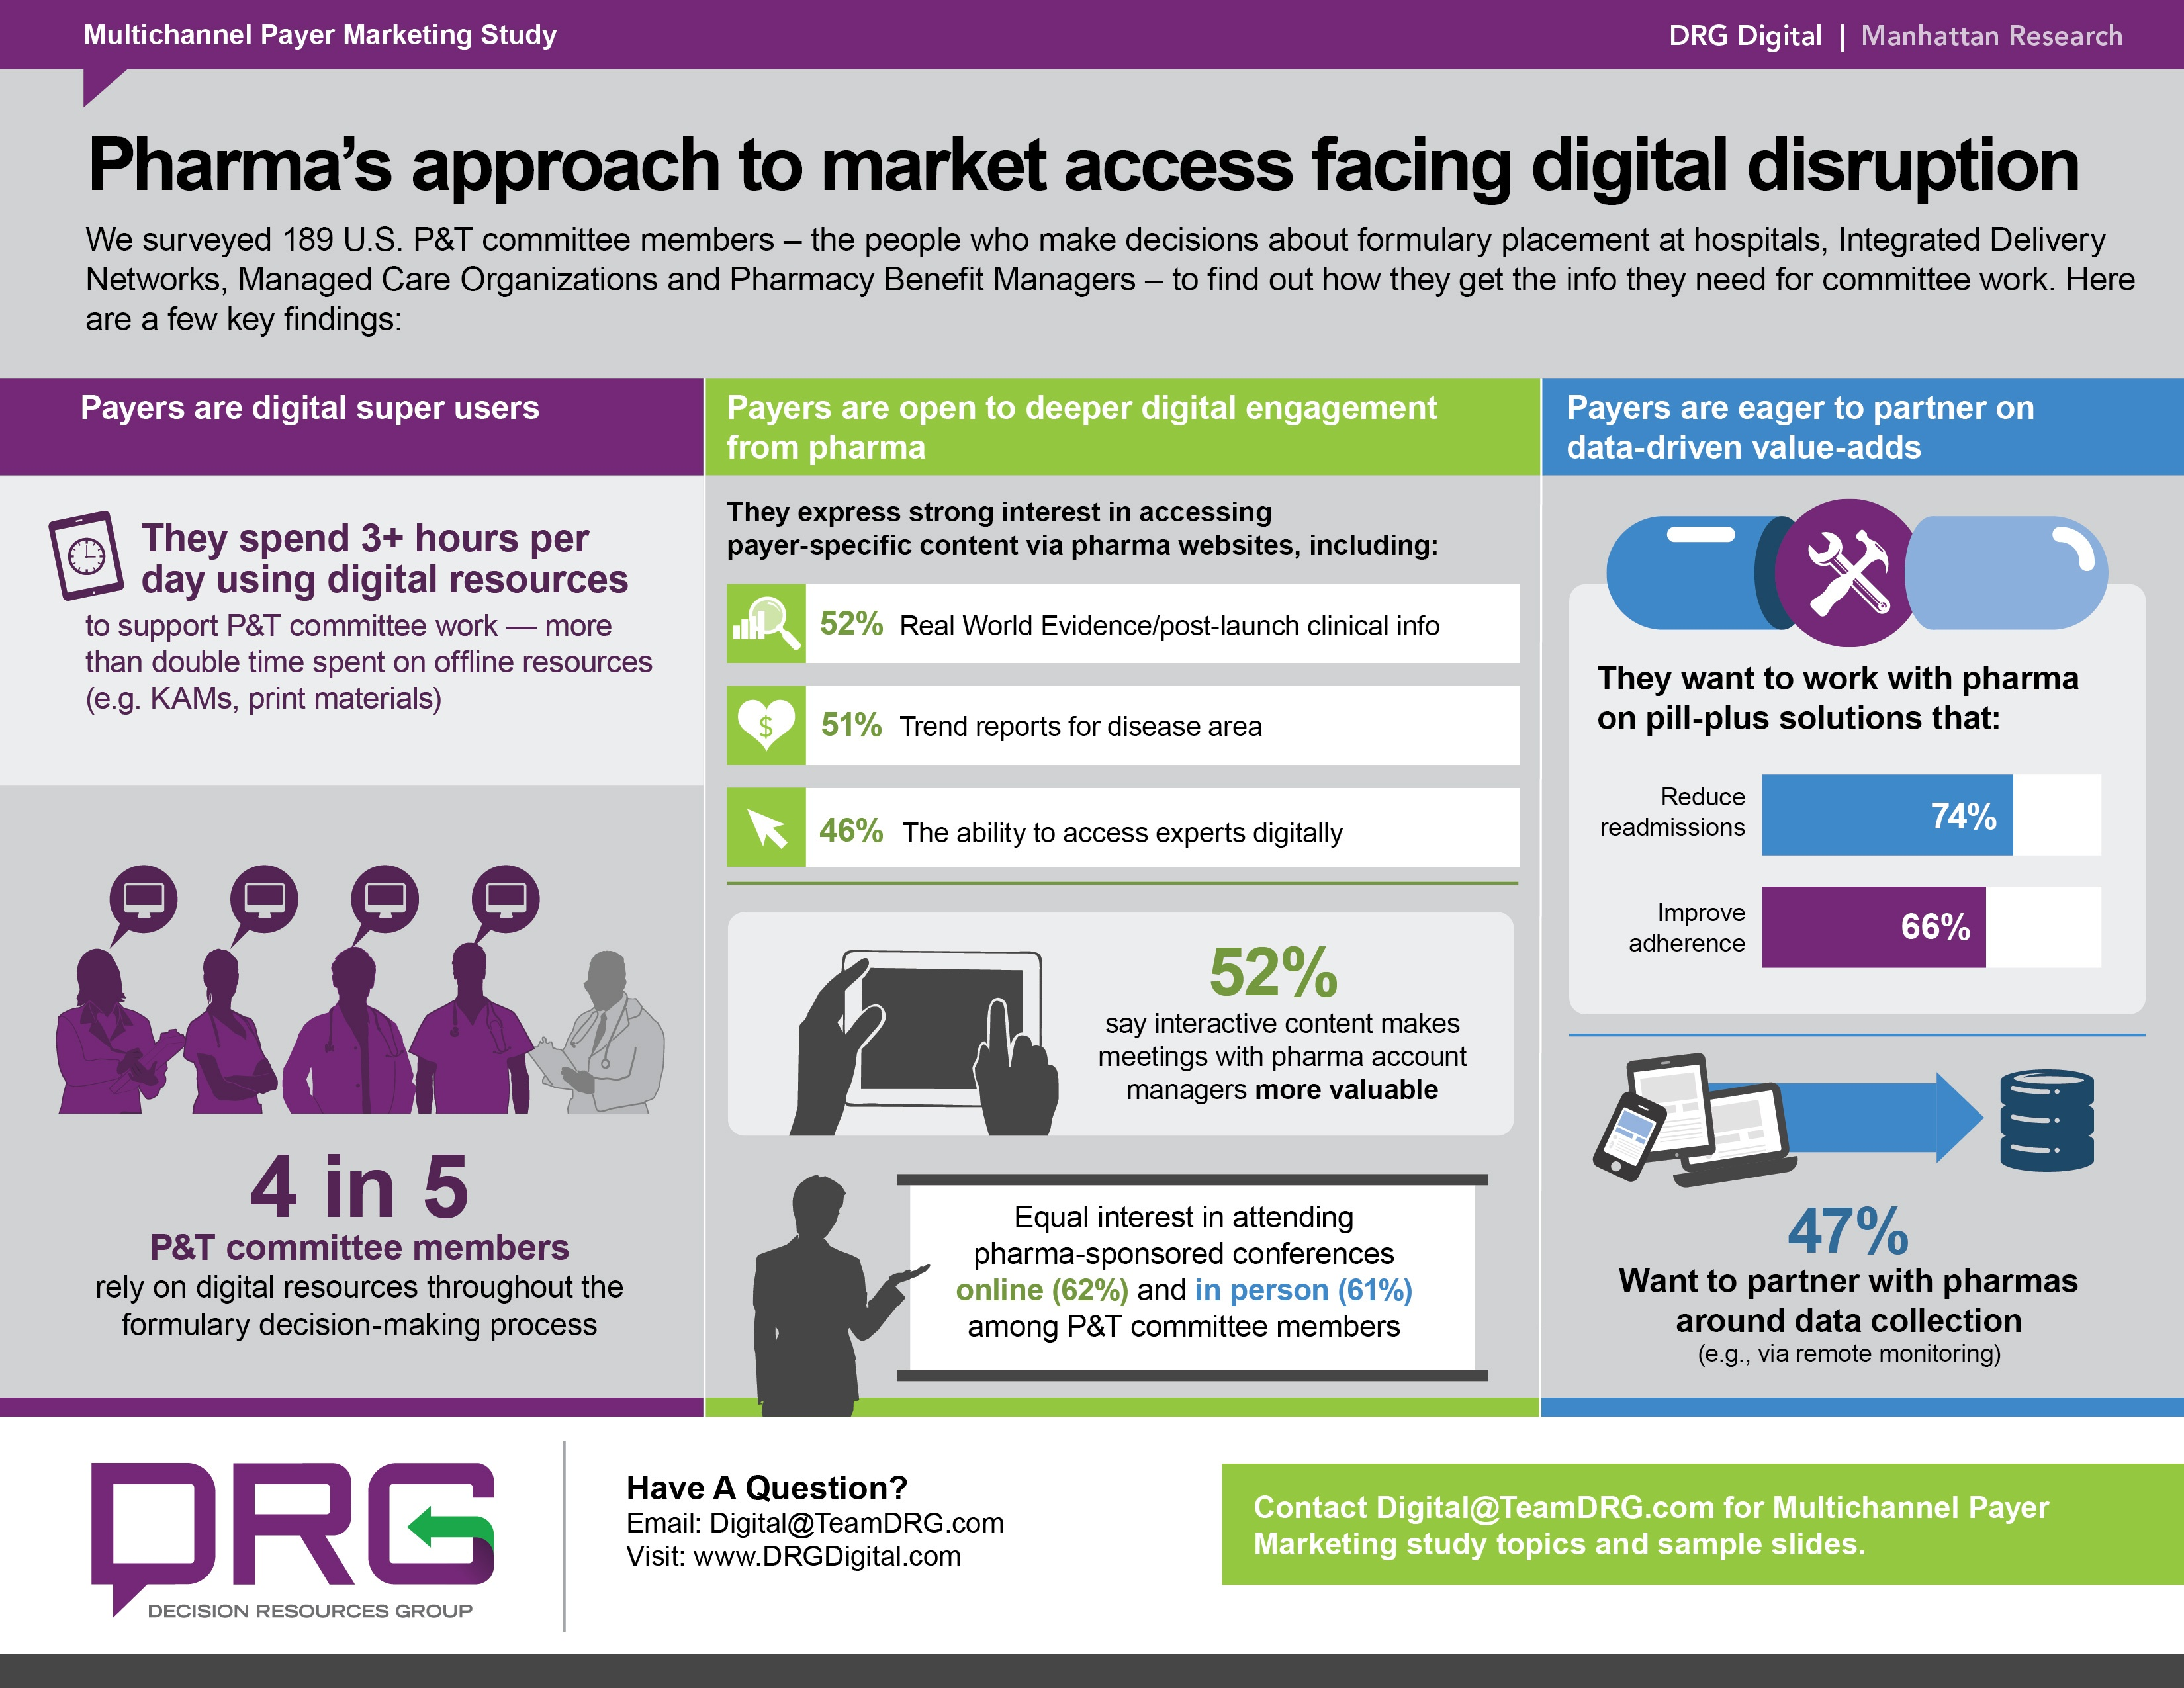 Digital Tools Are Transforming Pharma's Approach to Market Access | DRG Digital